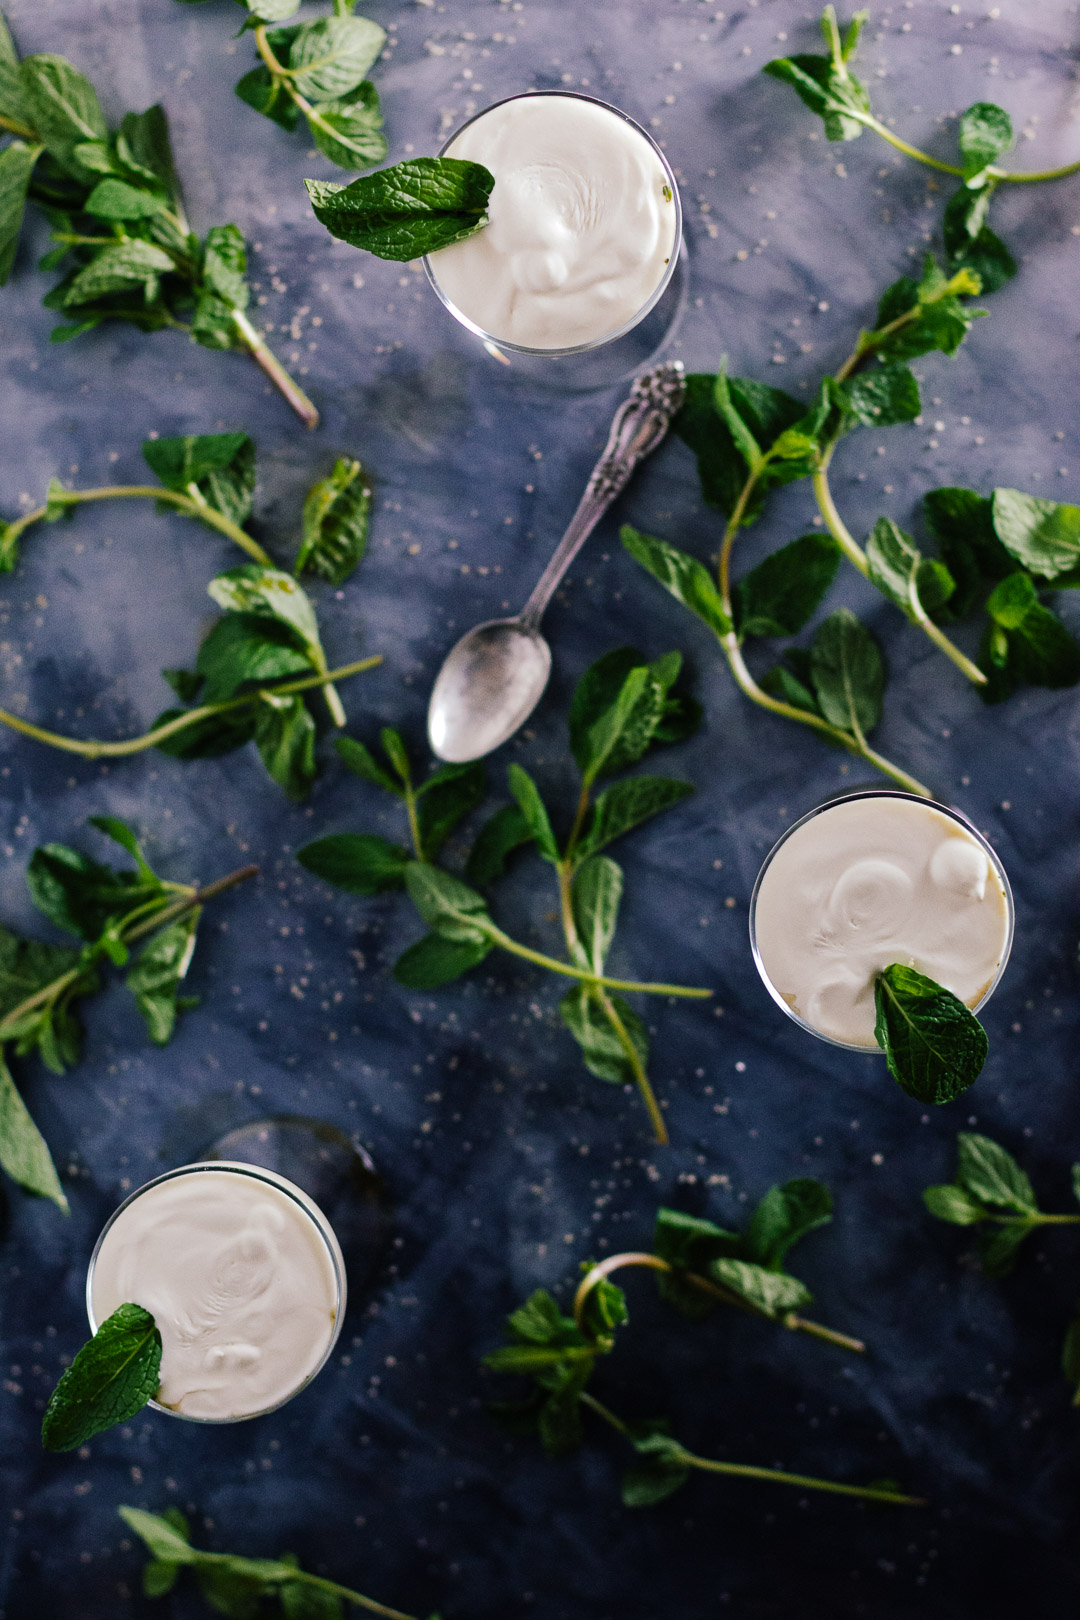 Overhead shot of three cream topped Irish Coffees surrounded by mint leaves on a smooth surface.